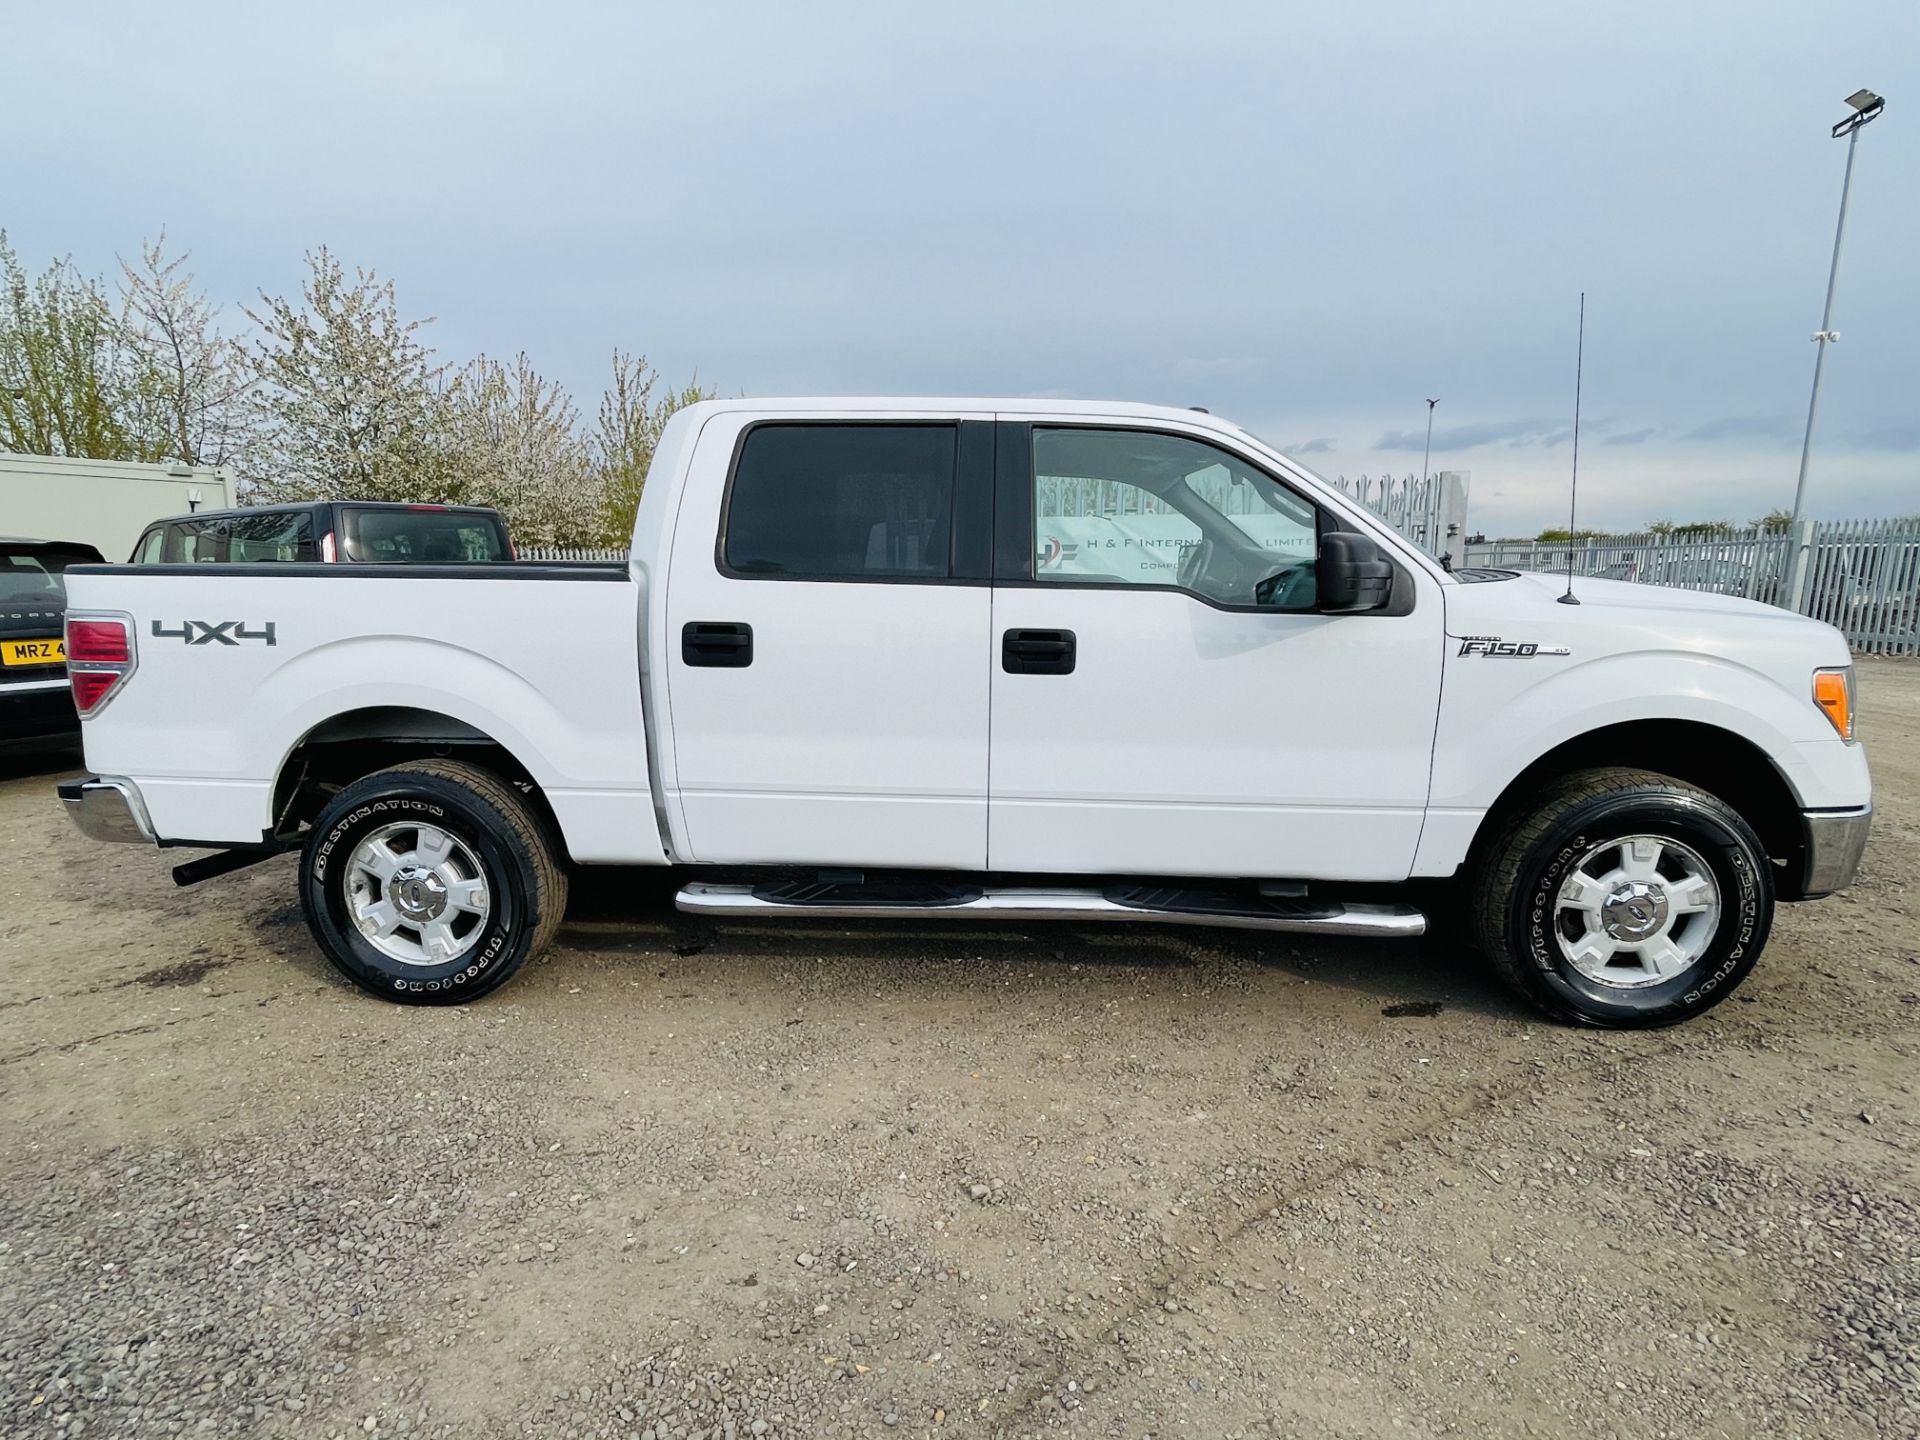 Ford F-150 XLT 4.6L V8 Super-crew 4WD 2010 ' 2010 Year' 6 Seats - Air con - NO RESERVE - Image 17 of 24